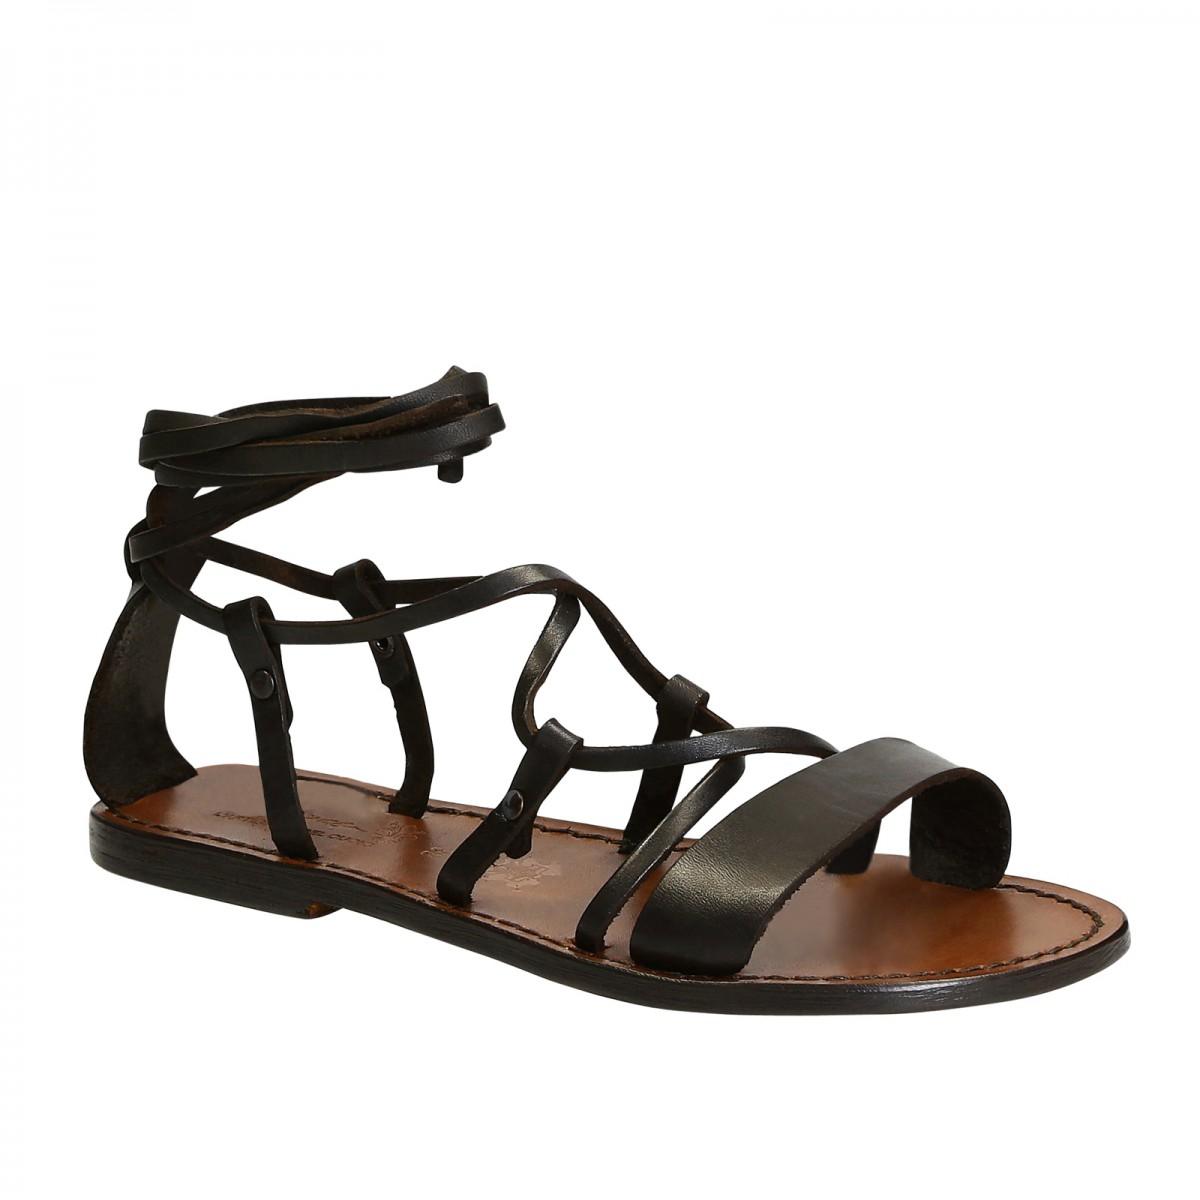 c5bcb5e82ef Handmade lace-up gladiator sandals in brown calf leather